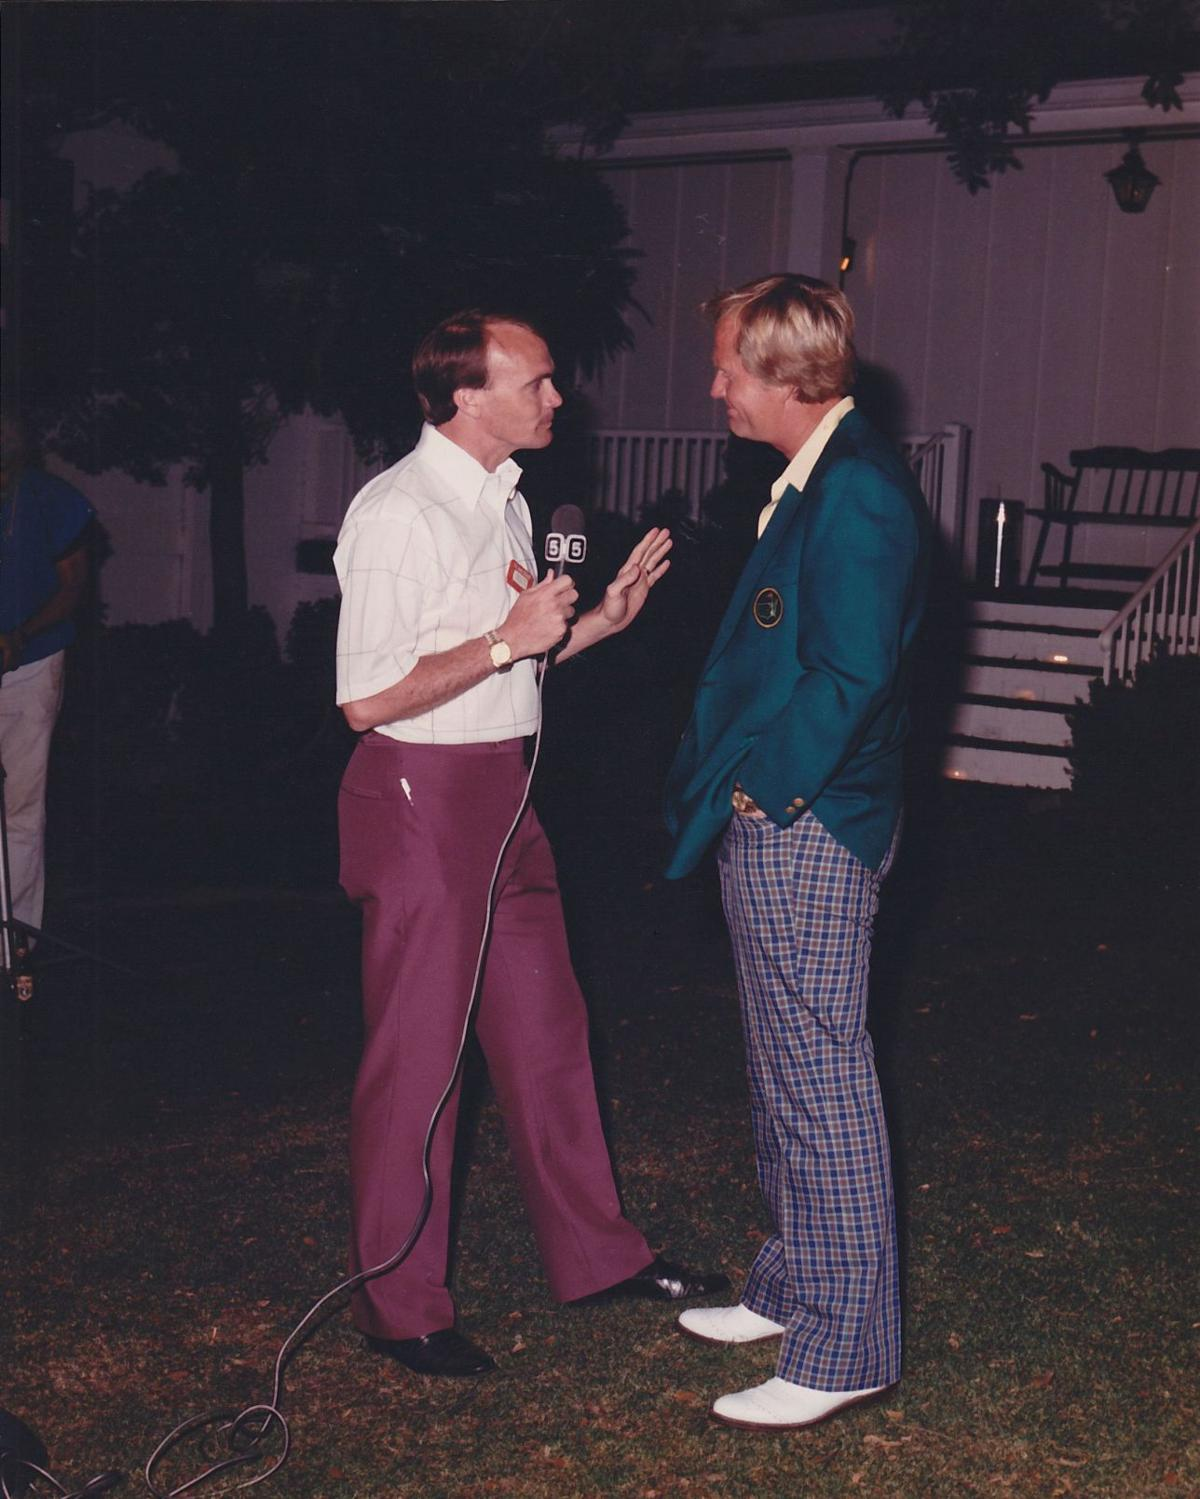 Remembering the Golden Bear's win at Augusta 30 years ago